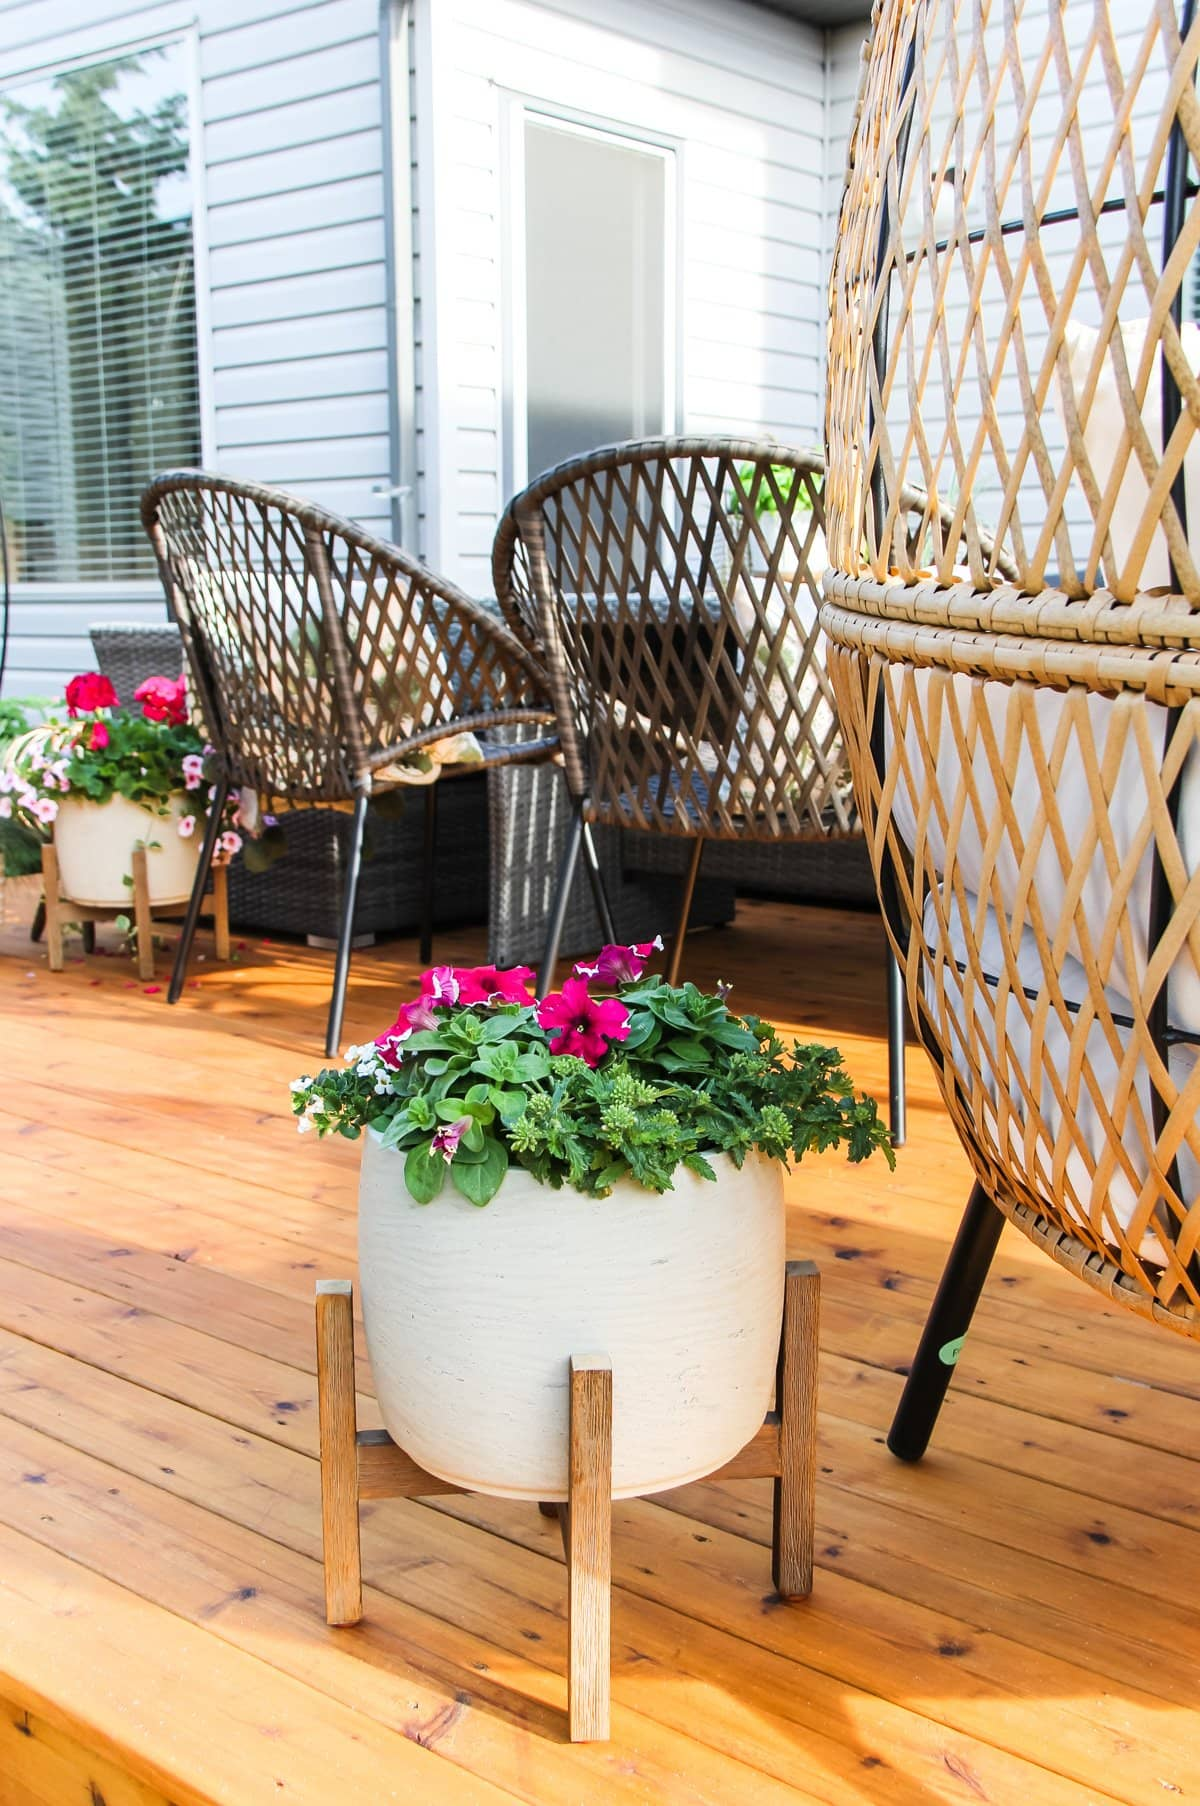 a raised planter of peonies sitting on a deck. in the background are wicker chairs and another planter